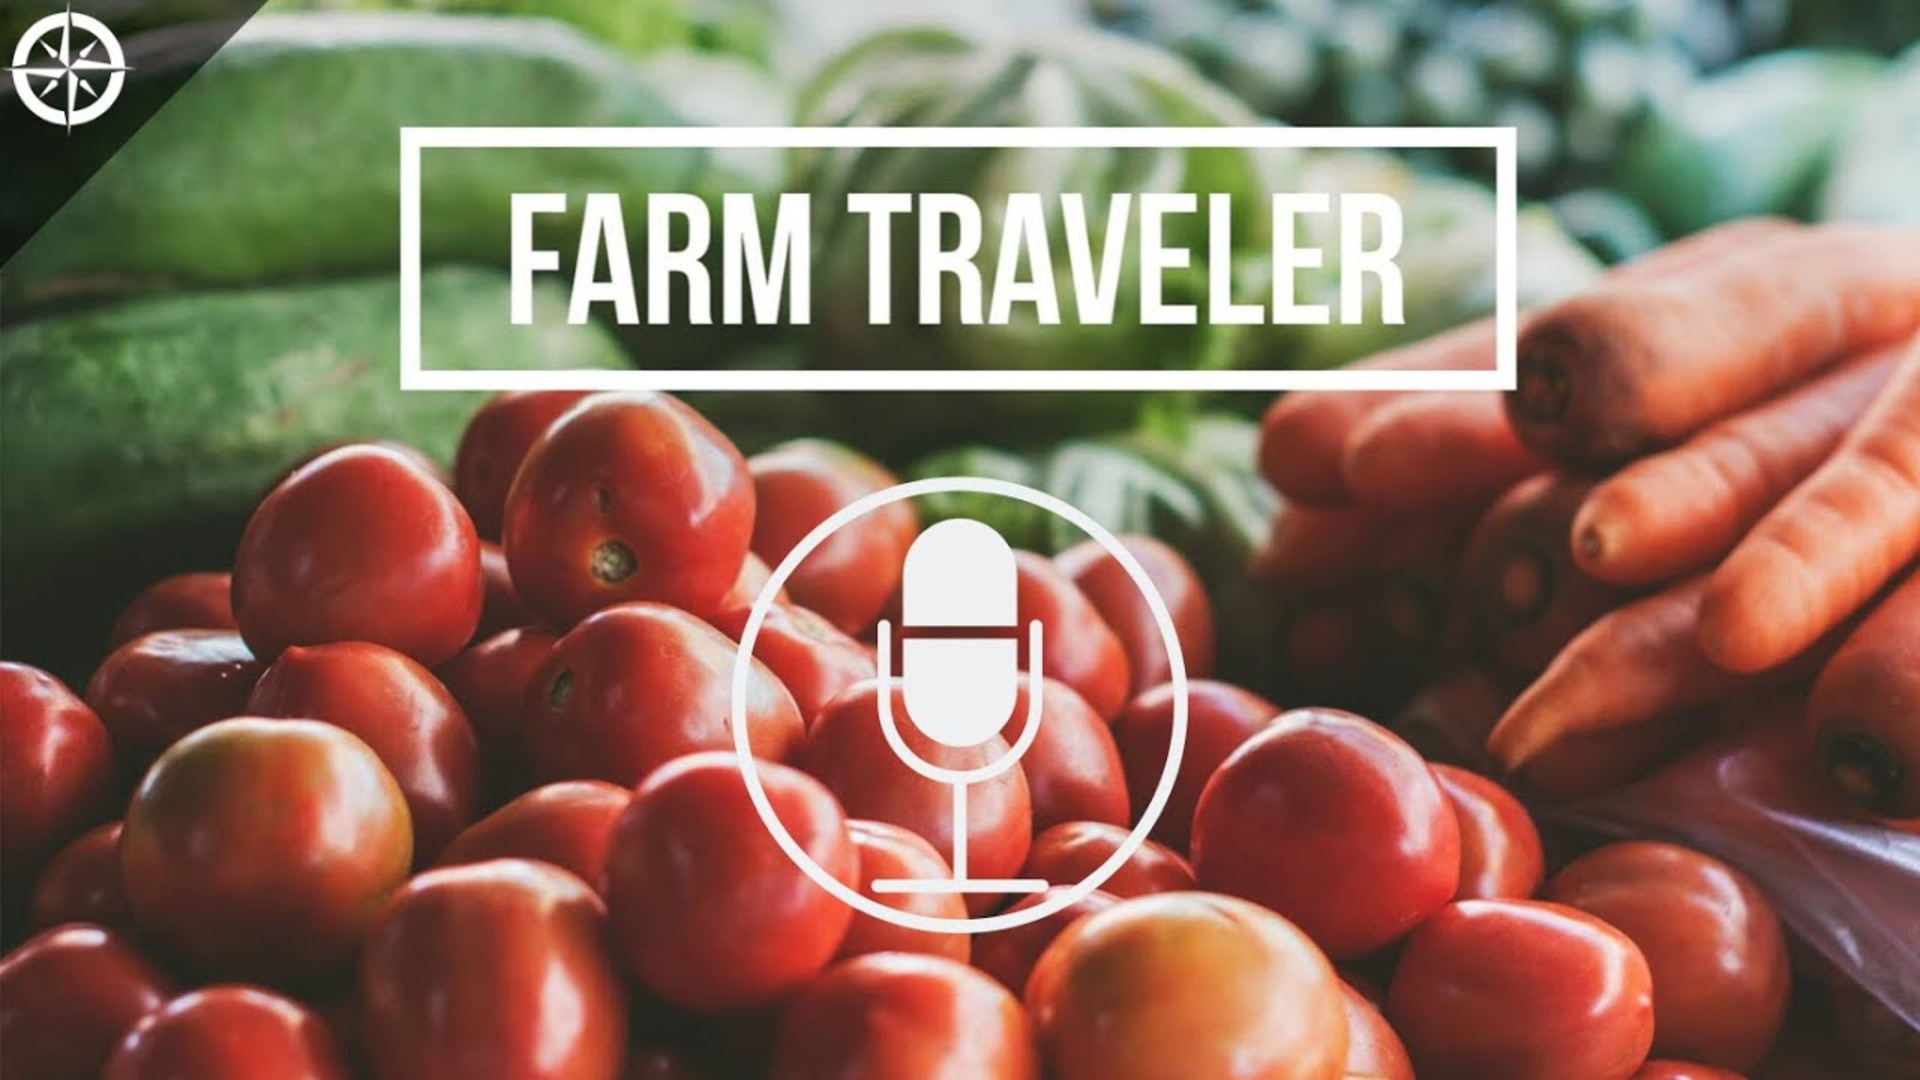 Florida Ag Teacher Turns Farm Traveler